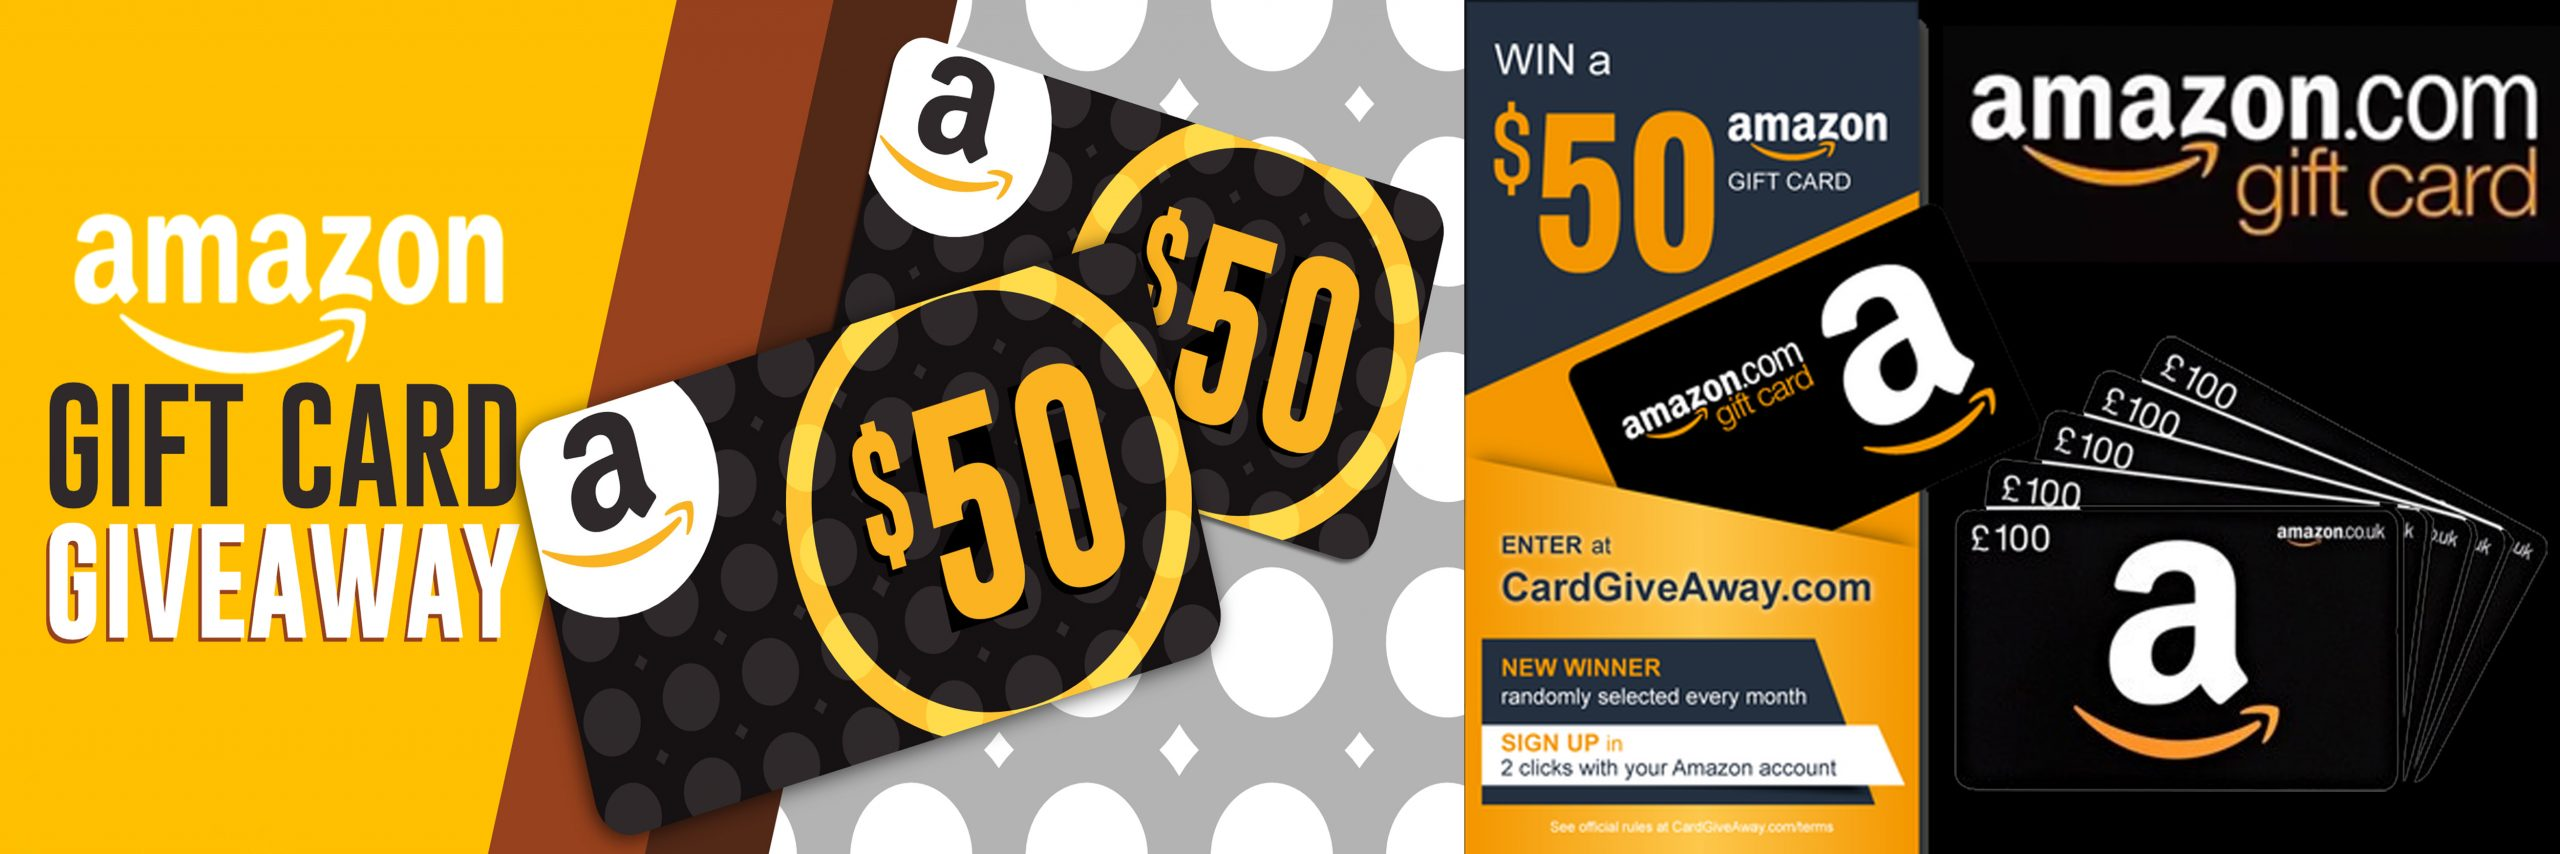 Amazon.com/Redeem | Enter Gift Card Code Redeem Amazon Balance